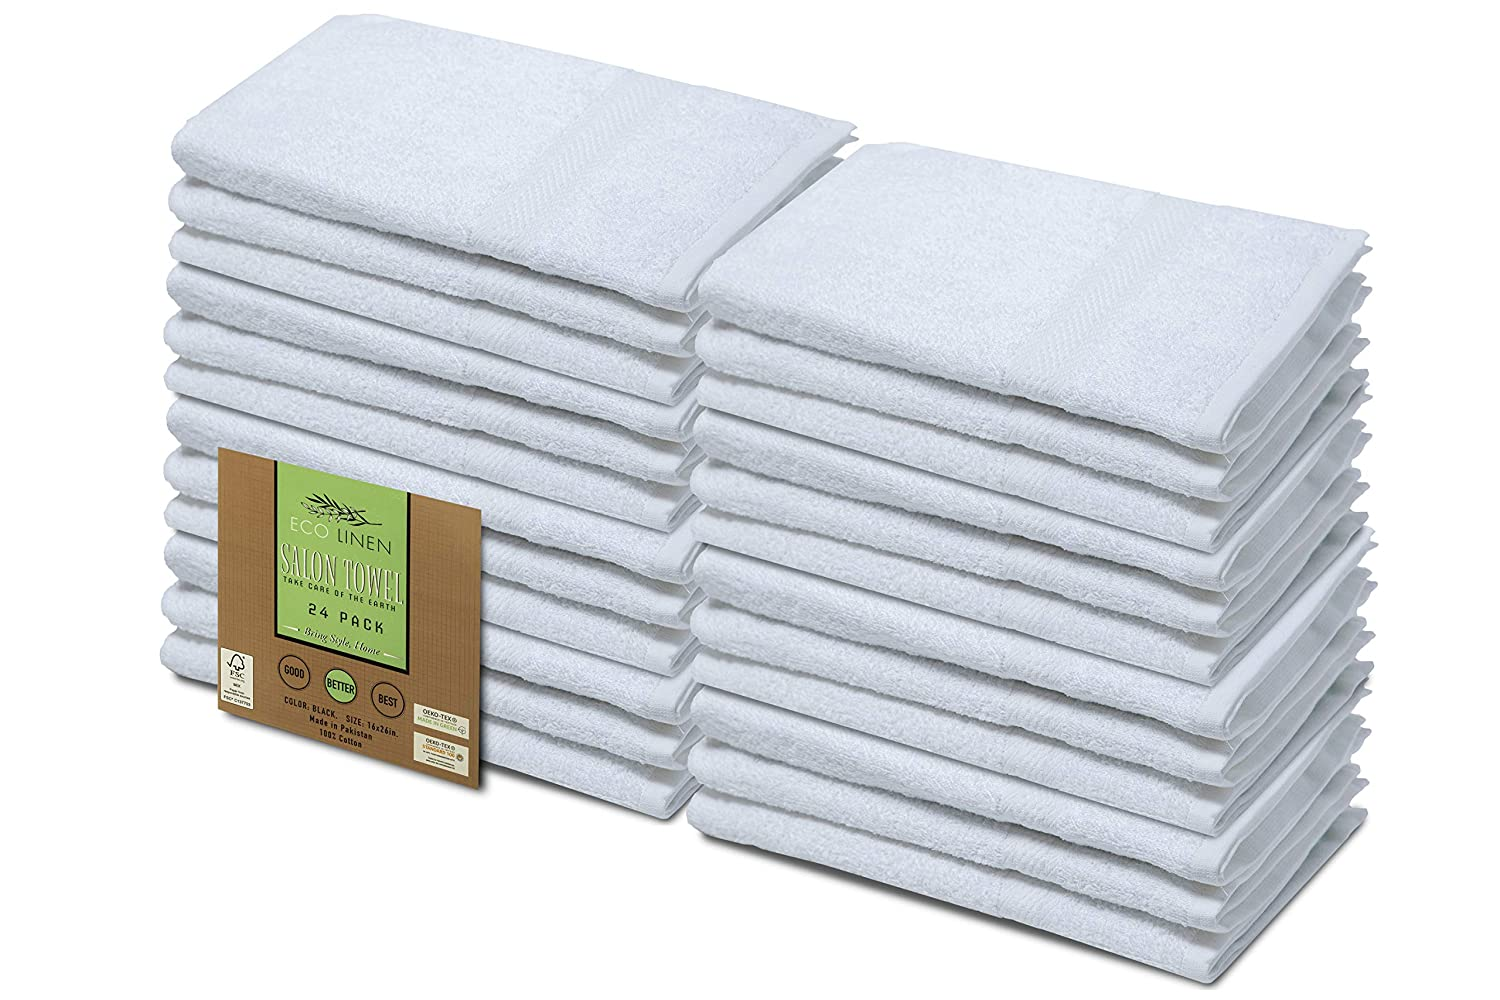 Eco Linen Cotton Salon Towels Gym Towel Hand Towel - Maximum Softness and Absorbency - 16 x 26 inches Easy Care Organic Cotton 24-Pack, White